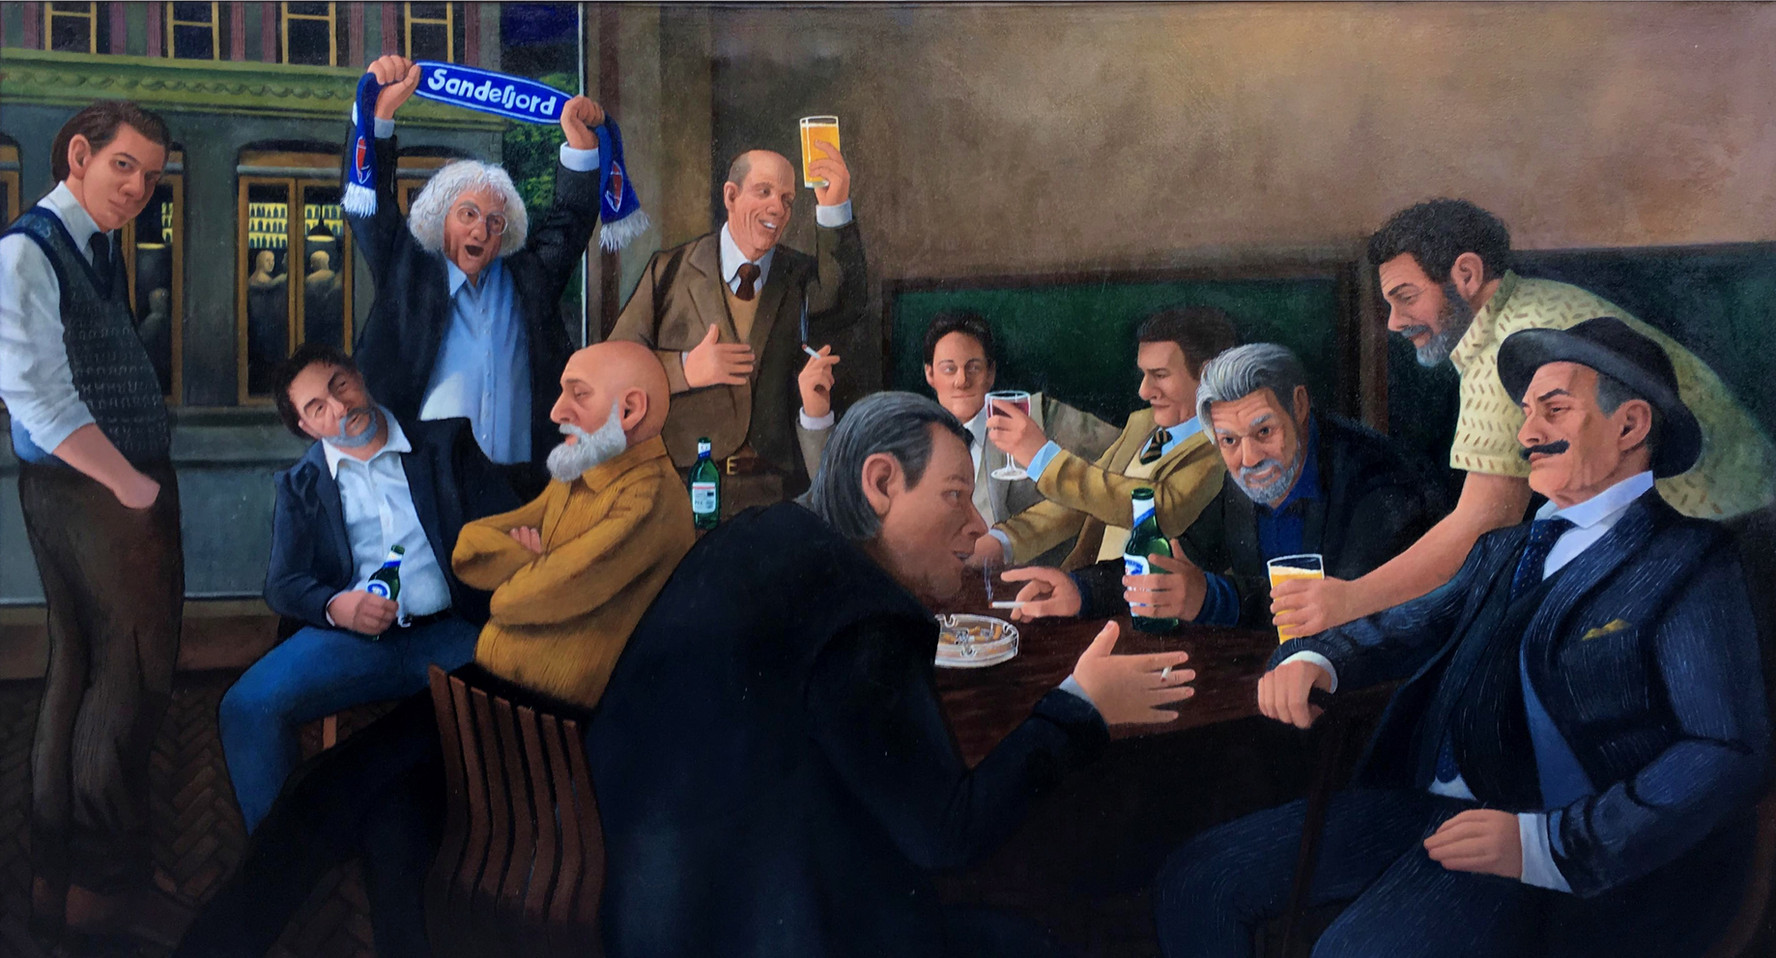 """Norwegian Authors"" Oil on Canvas 100x200cm Completed Sep. 2019."